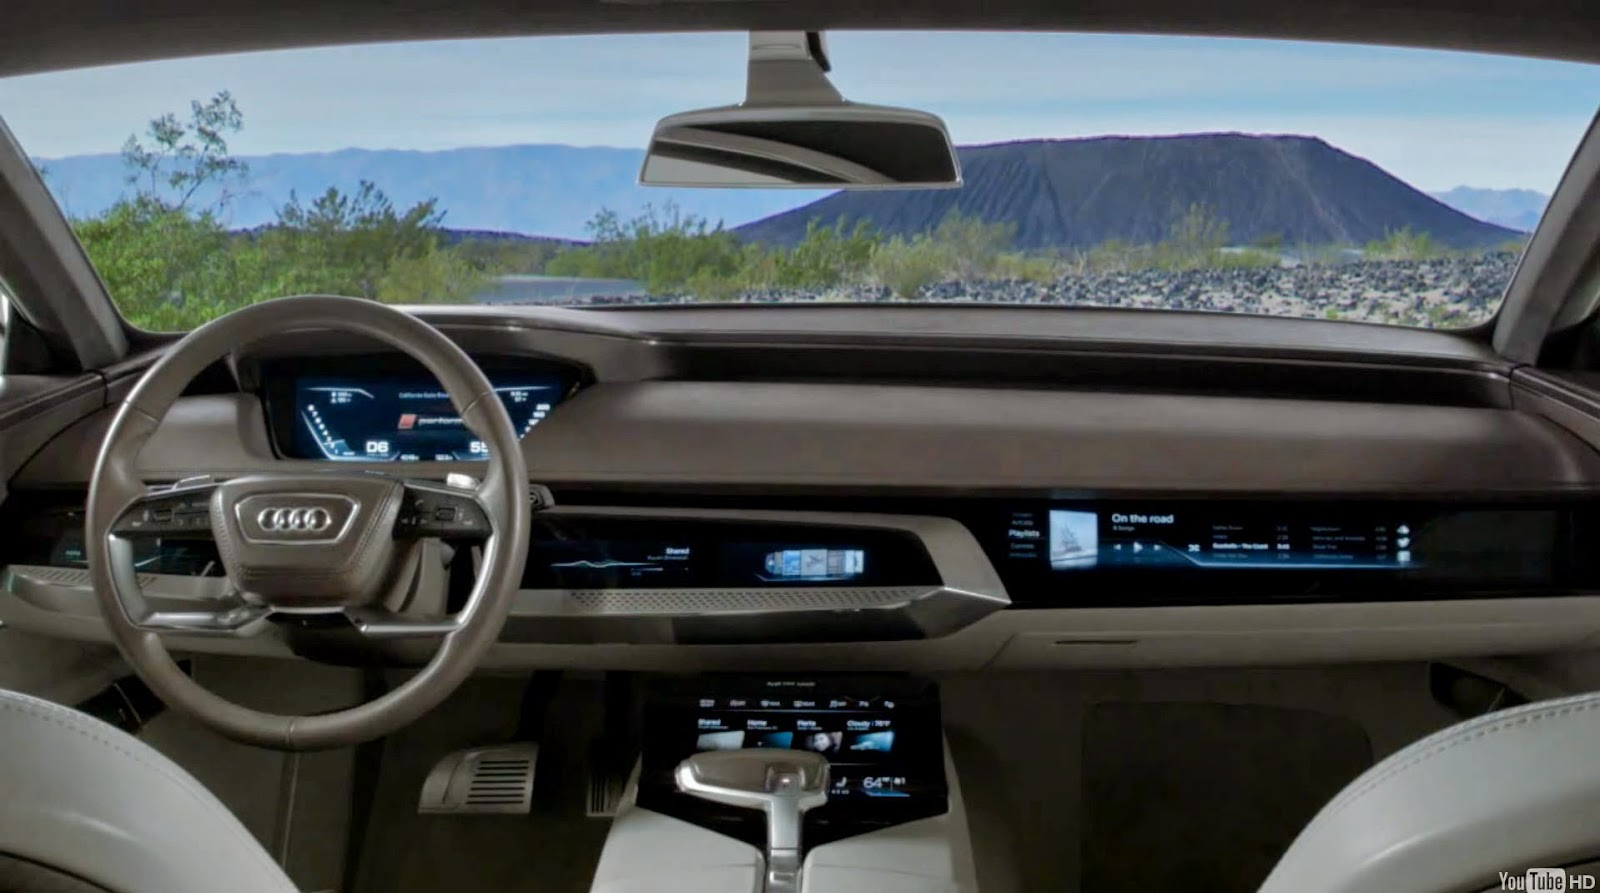 Ewoud Luppens: Audi Prologue Interior. As a Hardware Interface